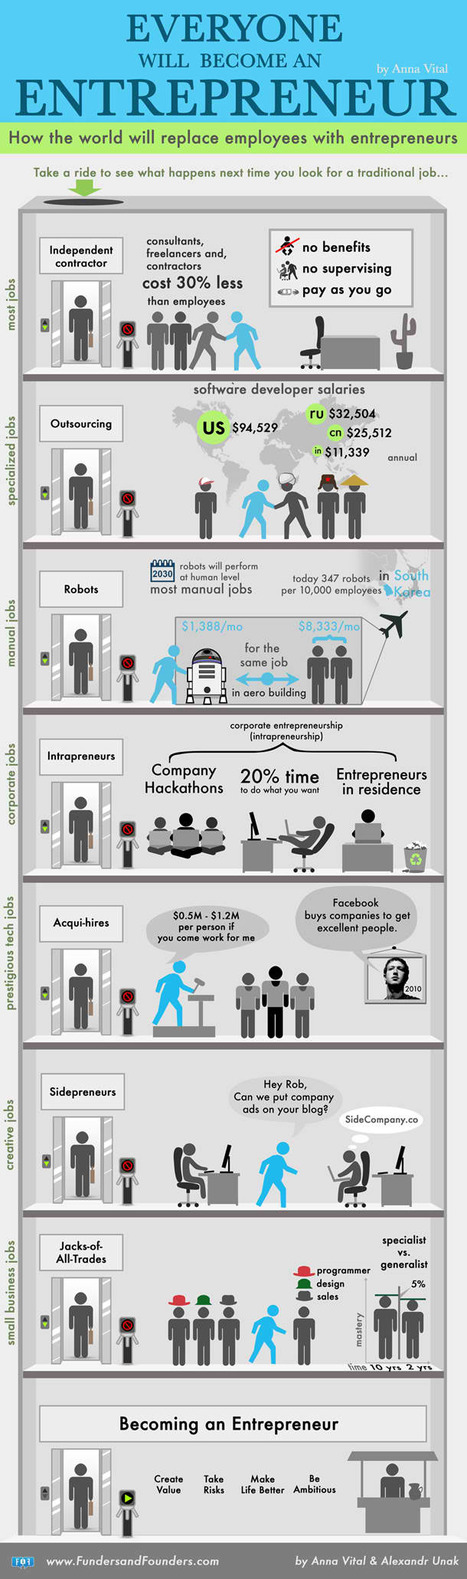 Why Everyone Will Have to Become an Entrepreneur (Infographic) | Finance | Scoop.it